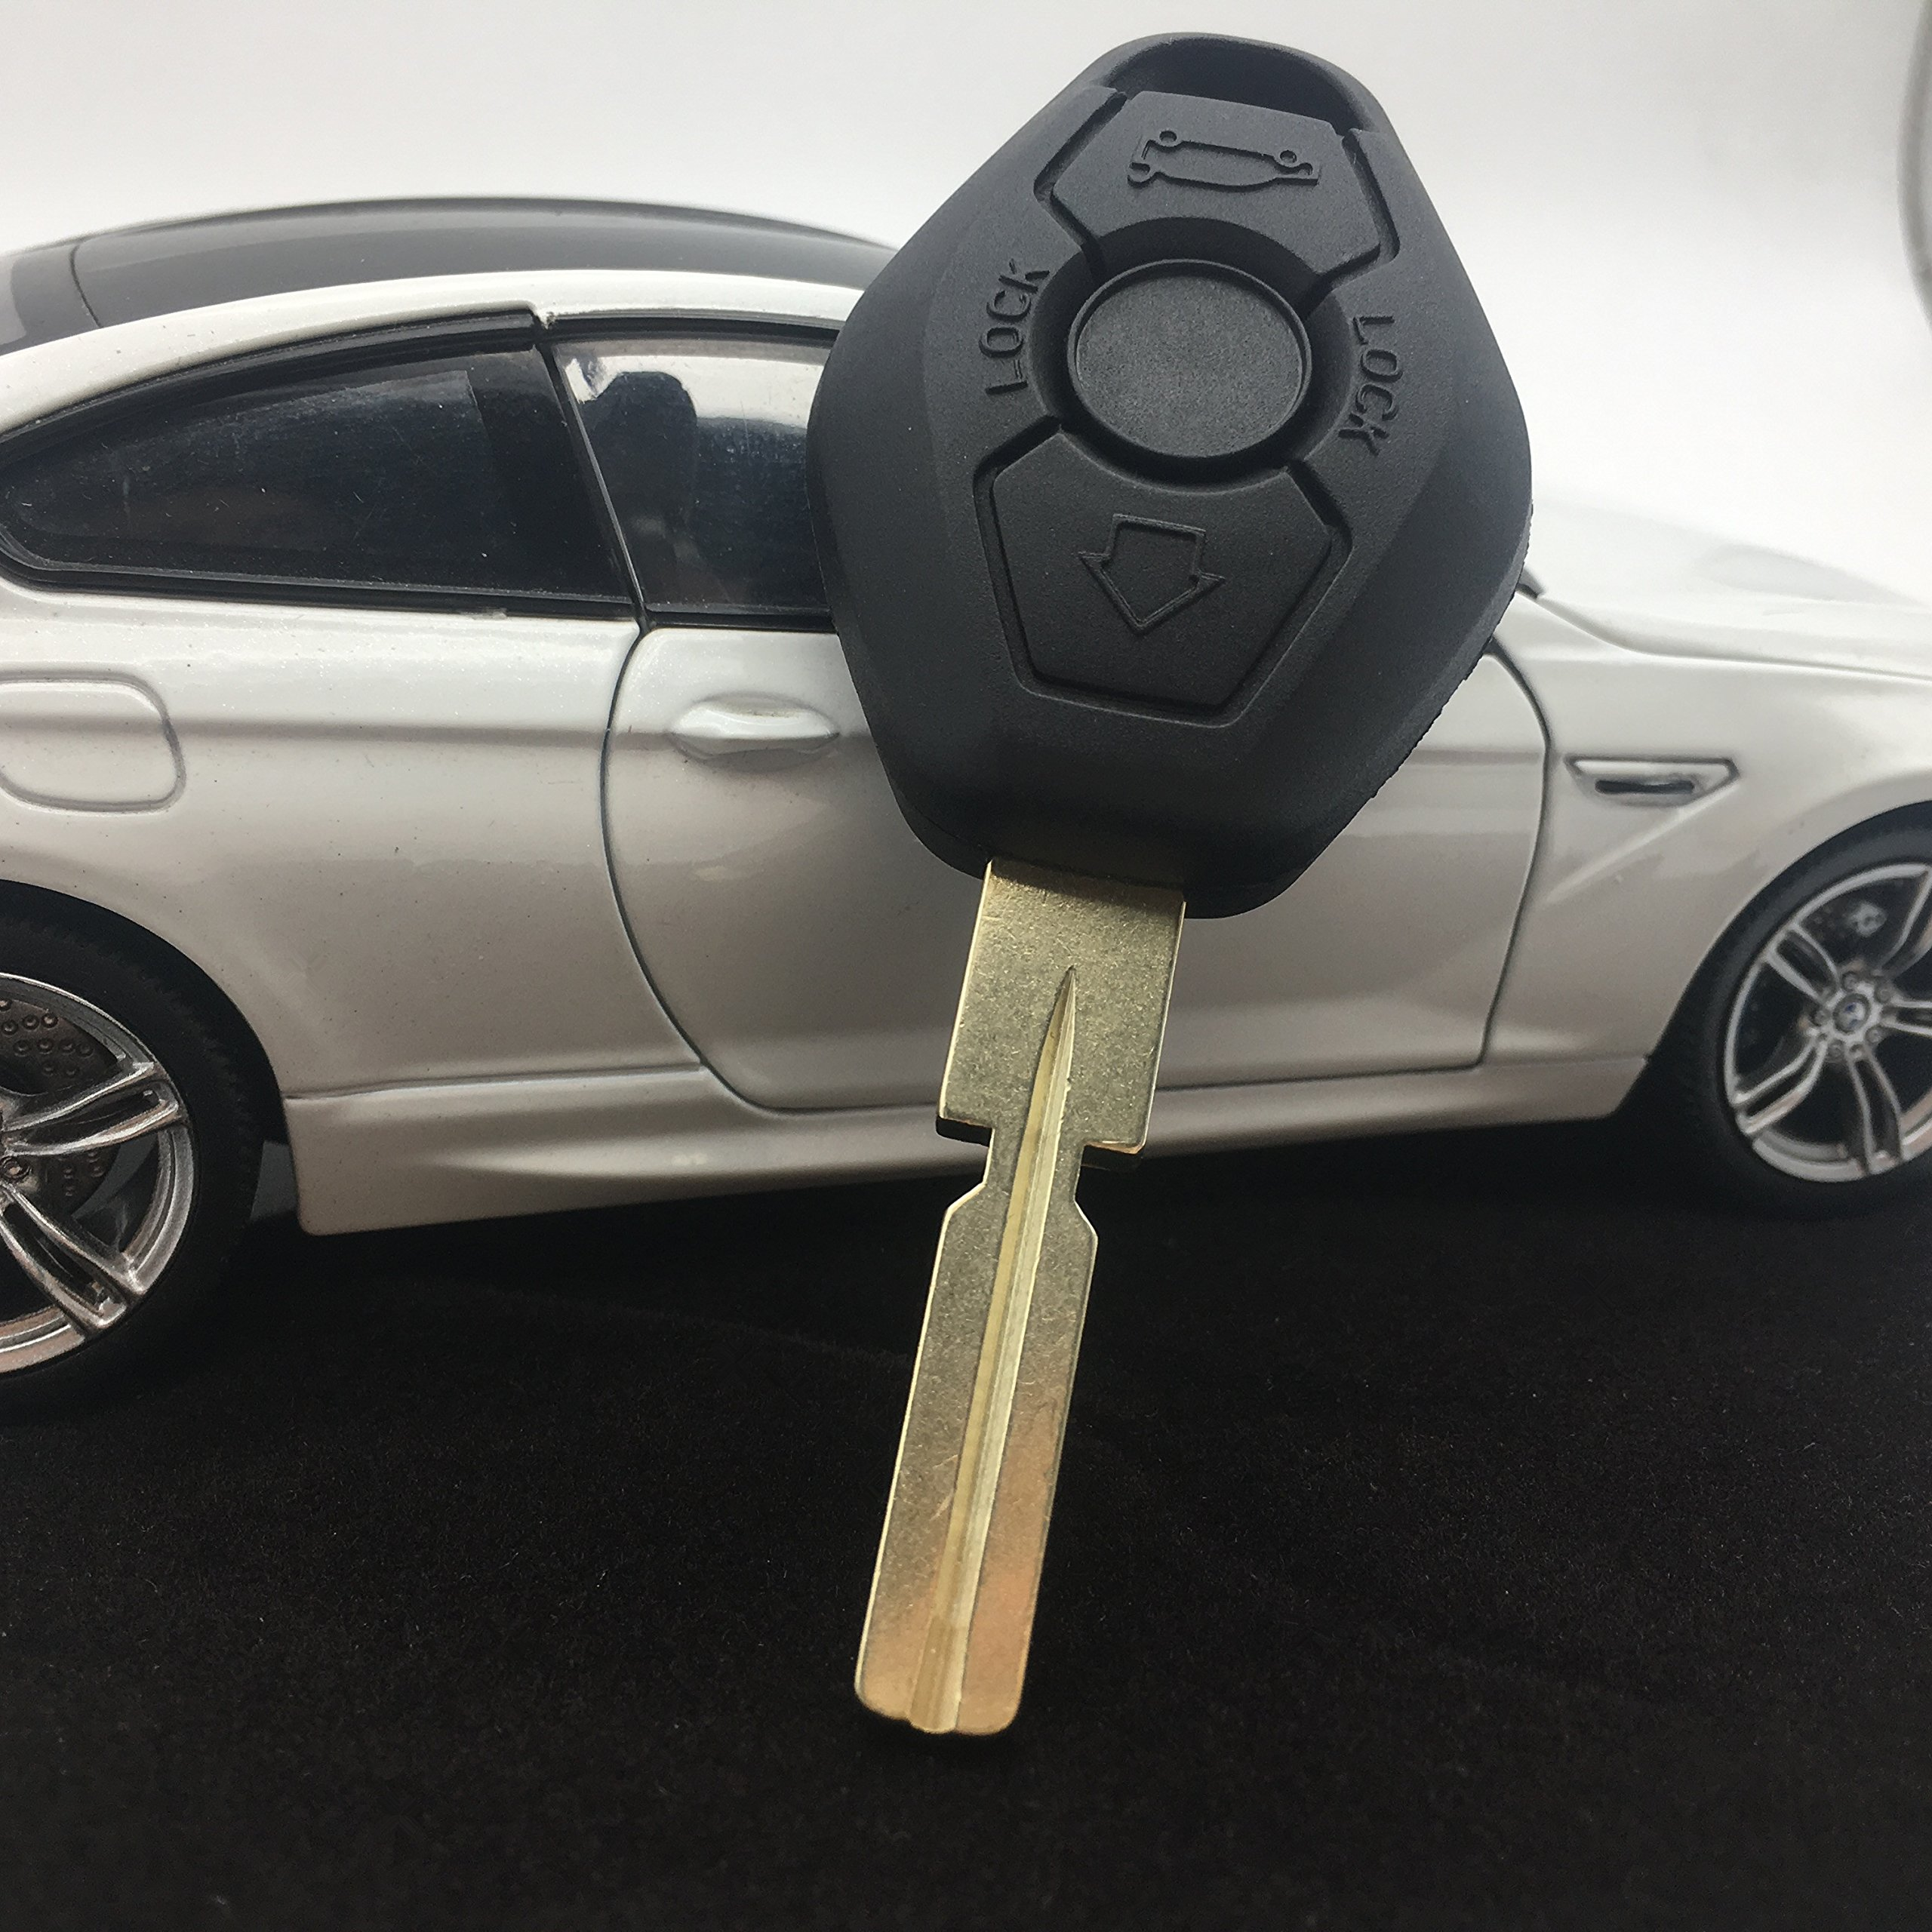 Dudely Remote Key For BMW 3 5 7 SERIES E38 E39 E46 315MHZ/433MHZ HU58 +ID44 CHIP